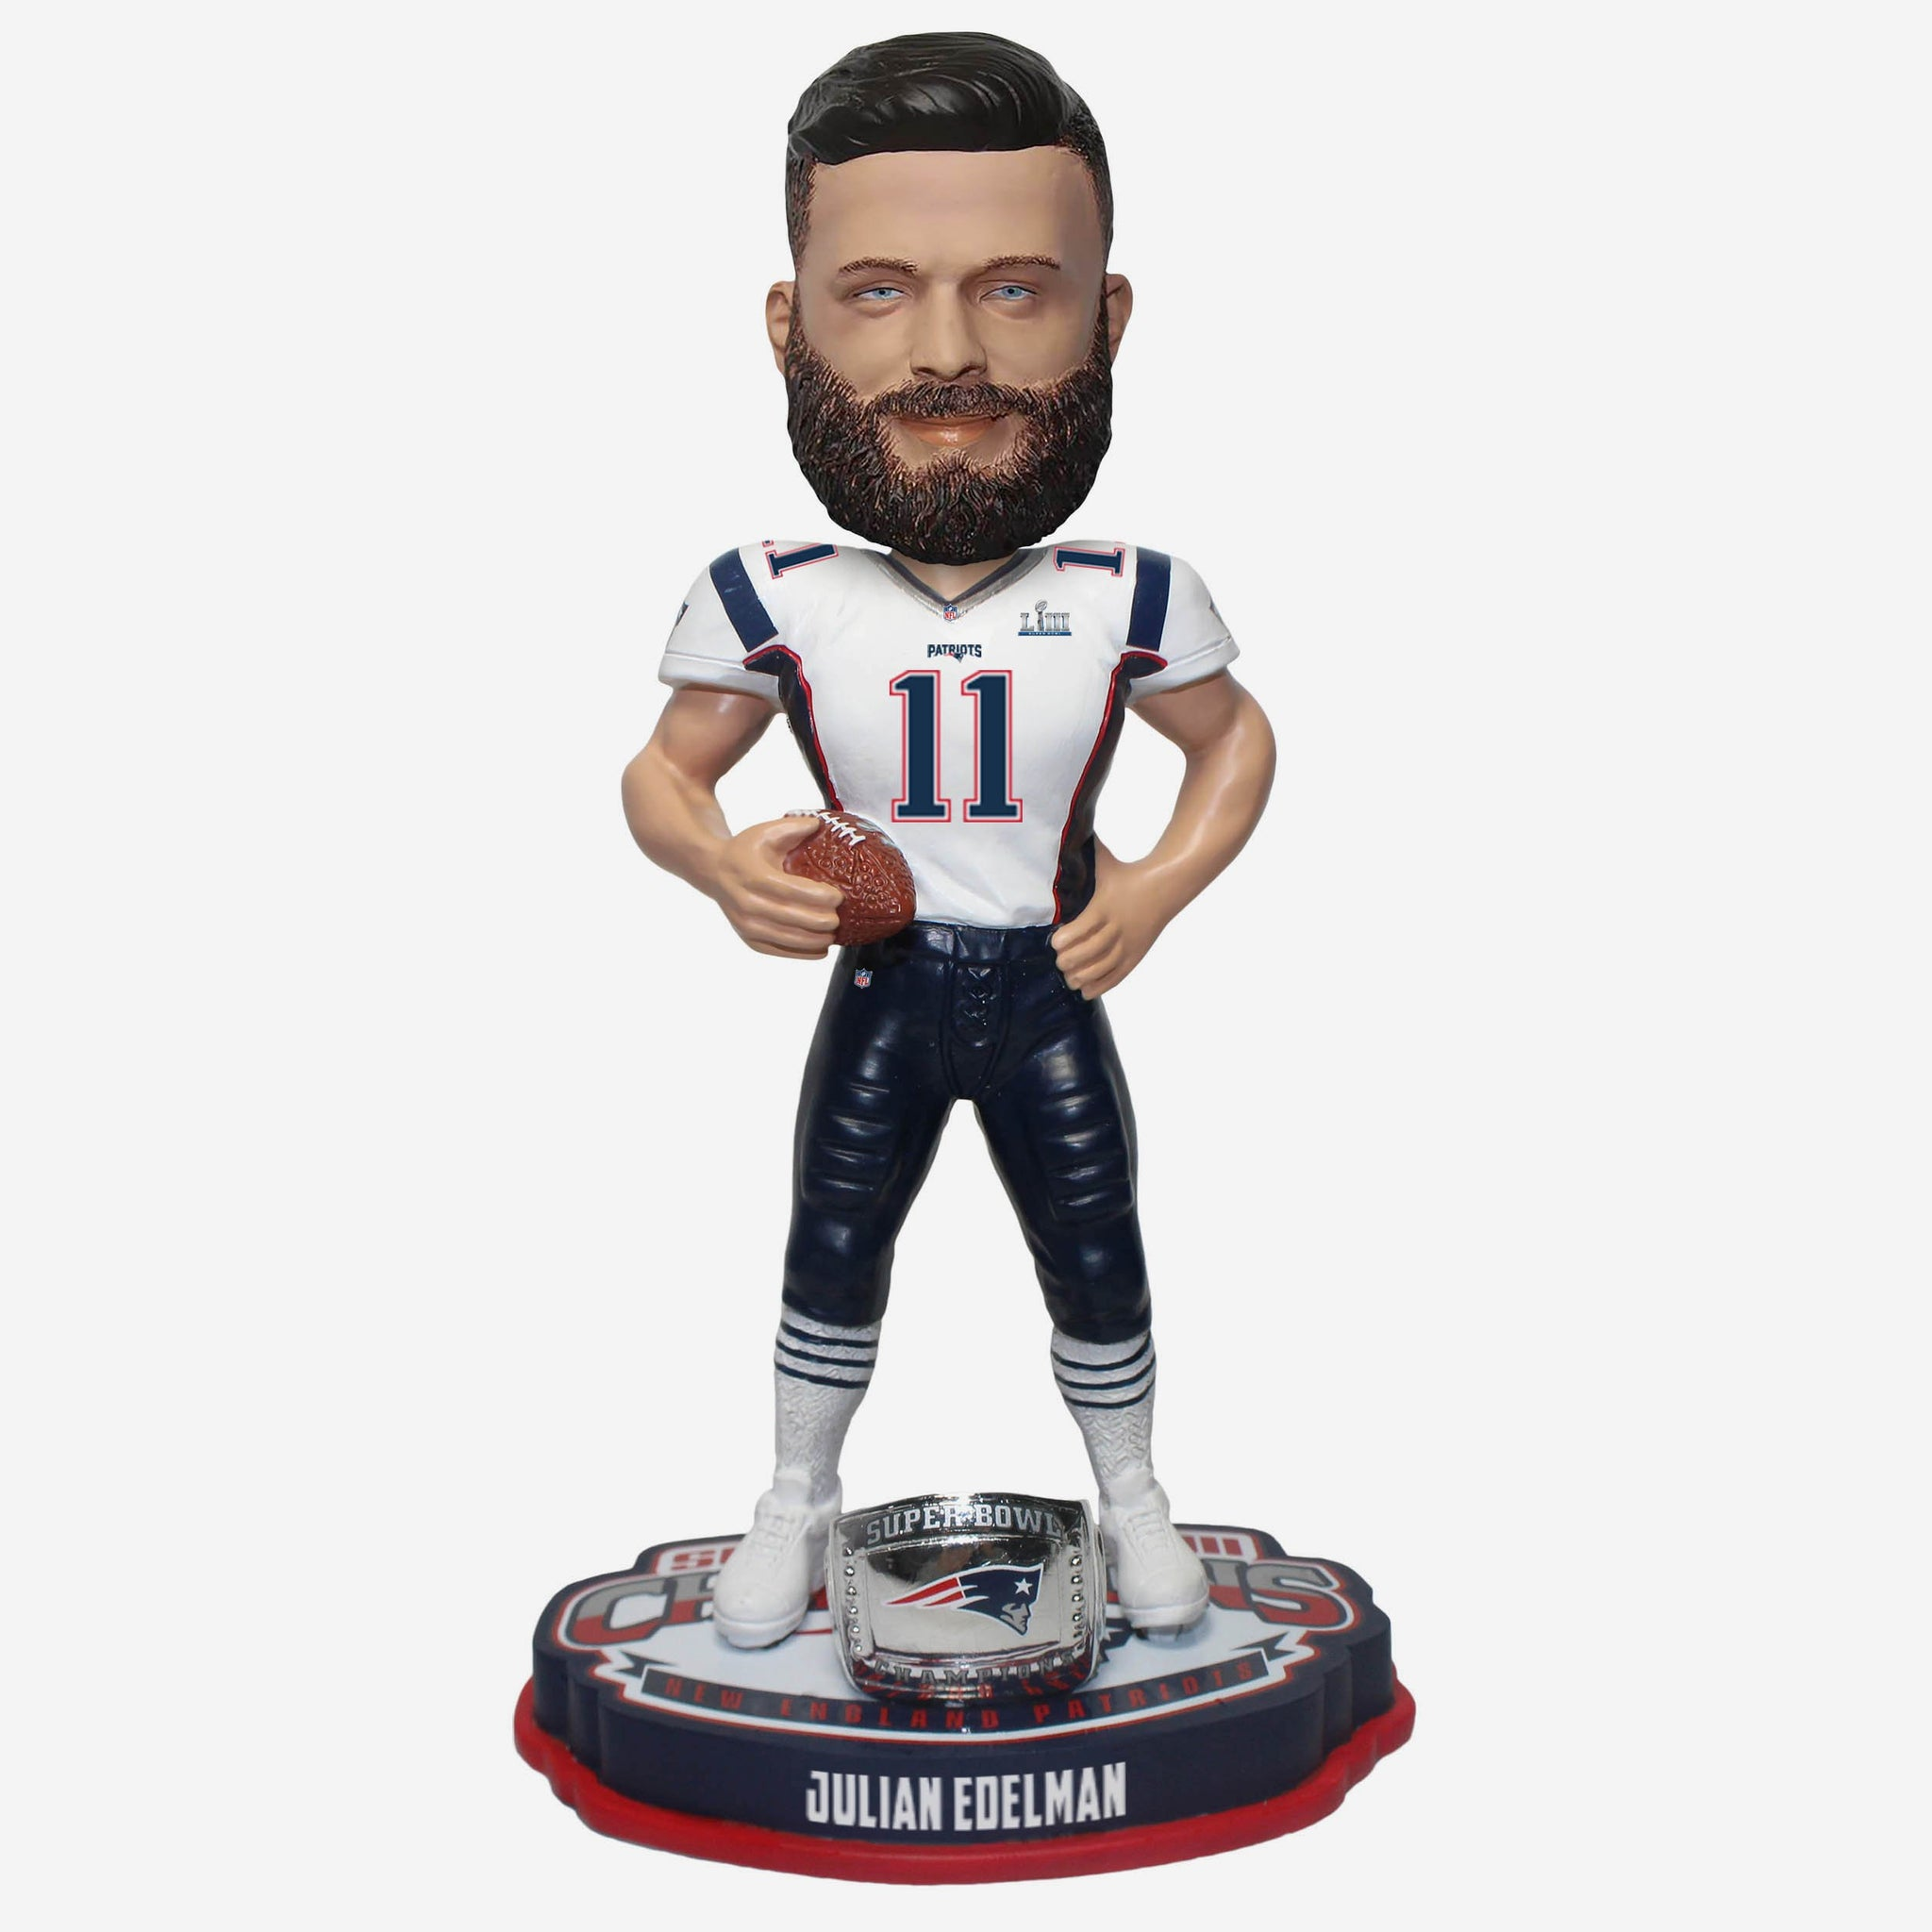 Collectibles - Bobbleheads - NFL